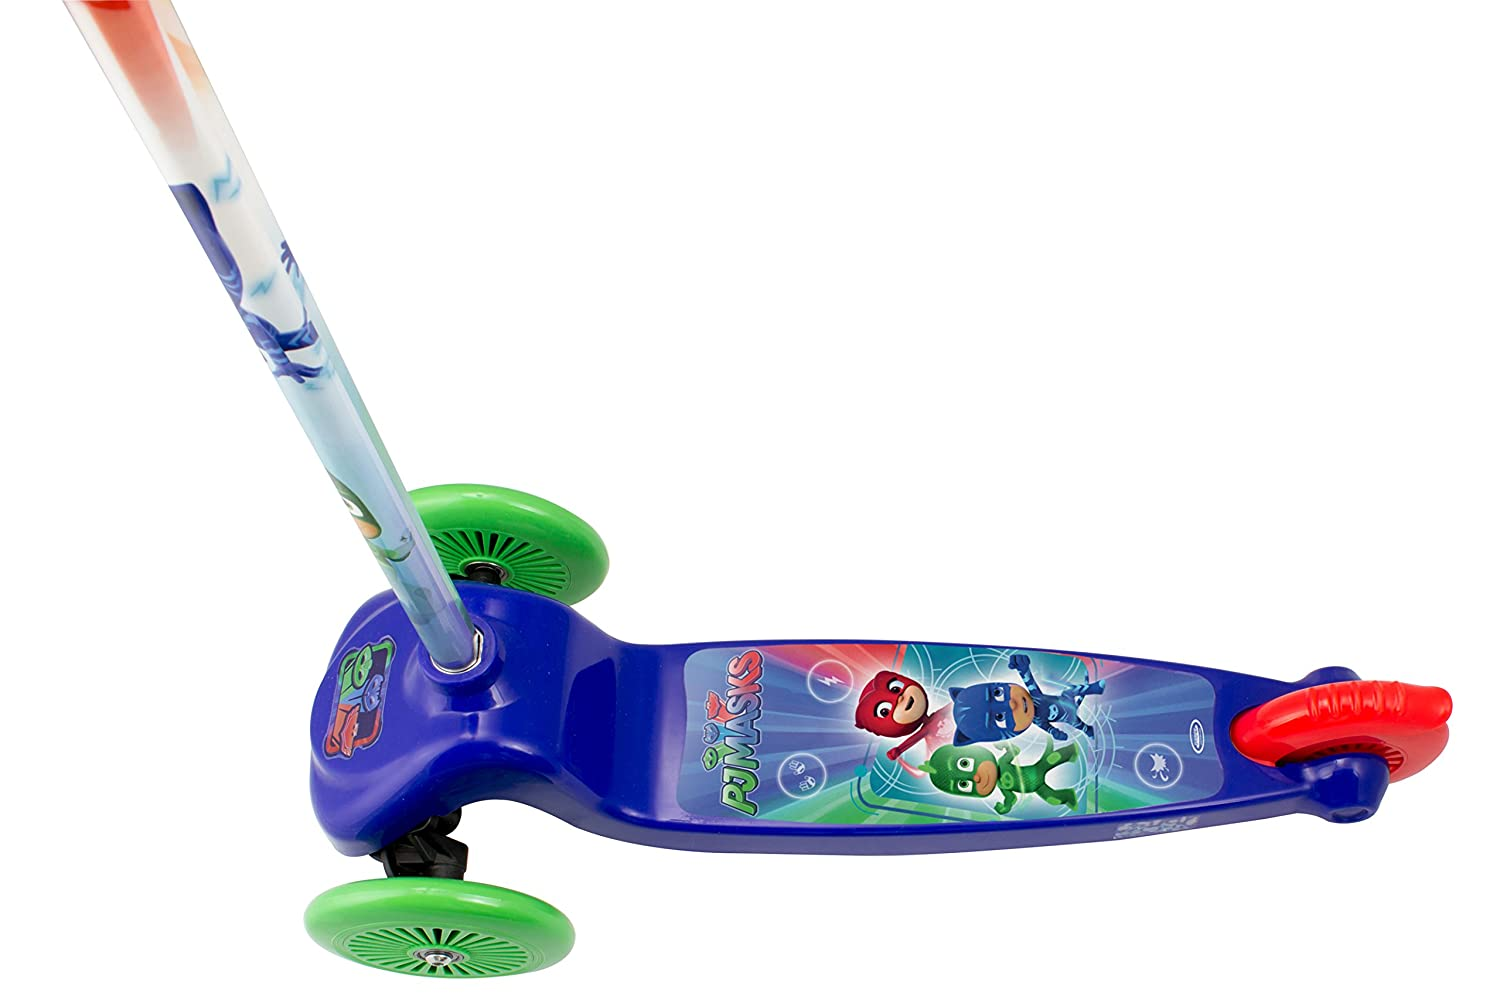 Amazon.com: PJ Masks OPJM199 Kids Three Wheel Flex Scooter ...